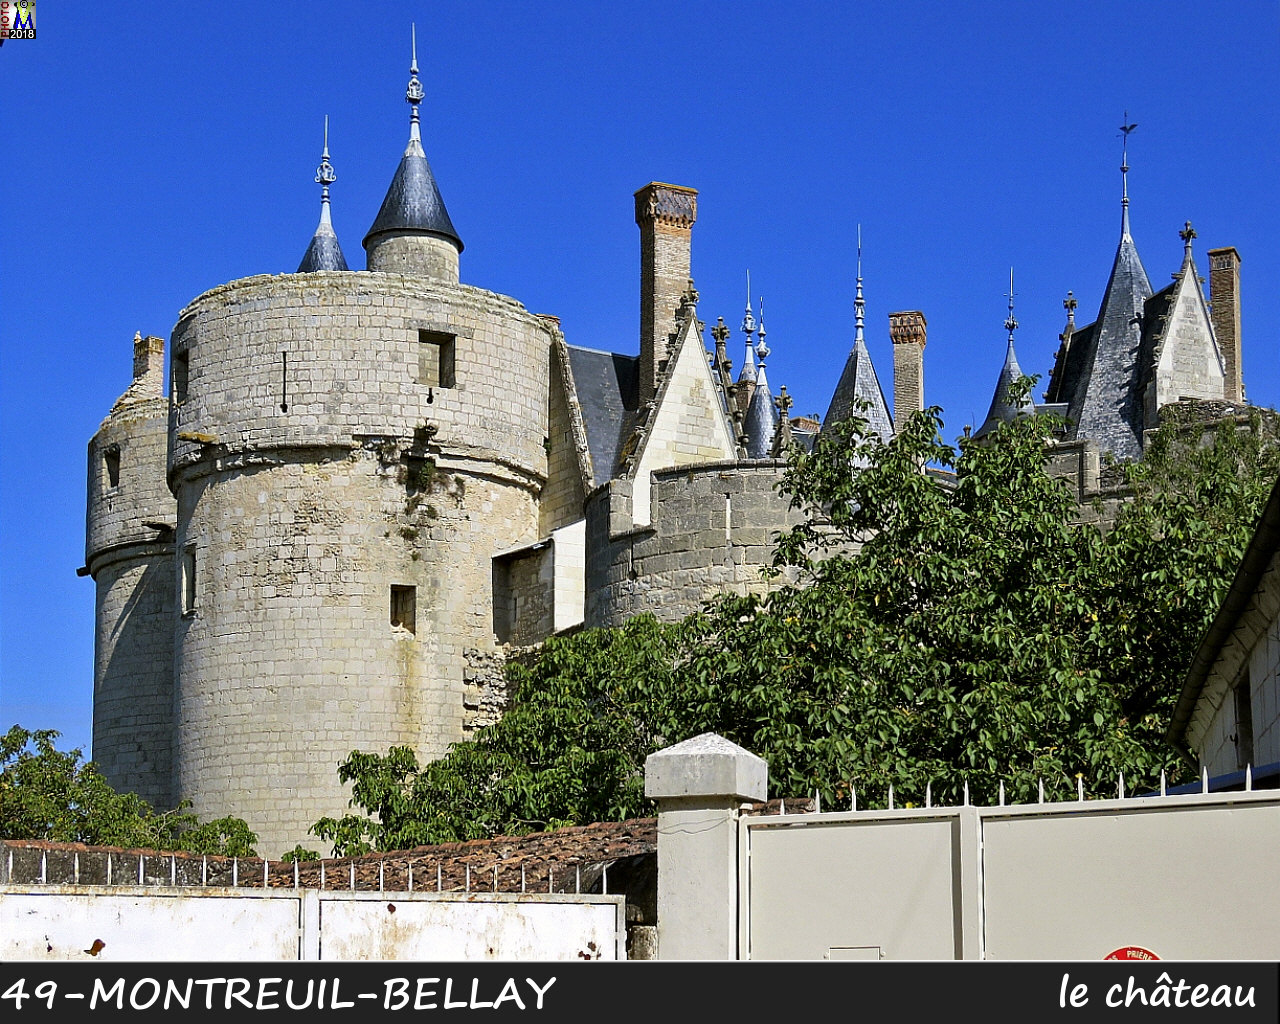 49MONTREUIL-BELLAY_chateau_1036.jpg